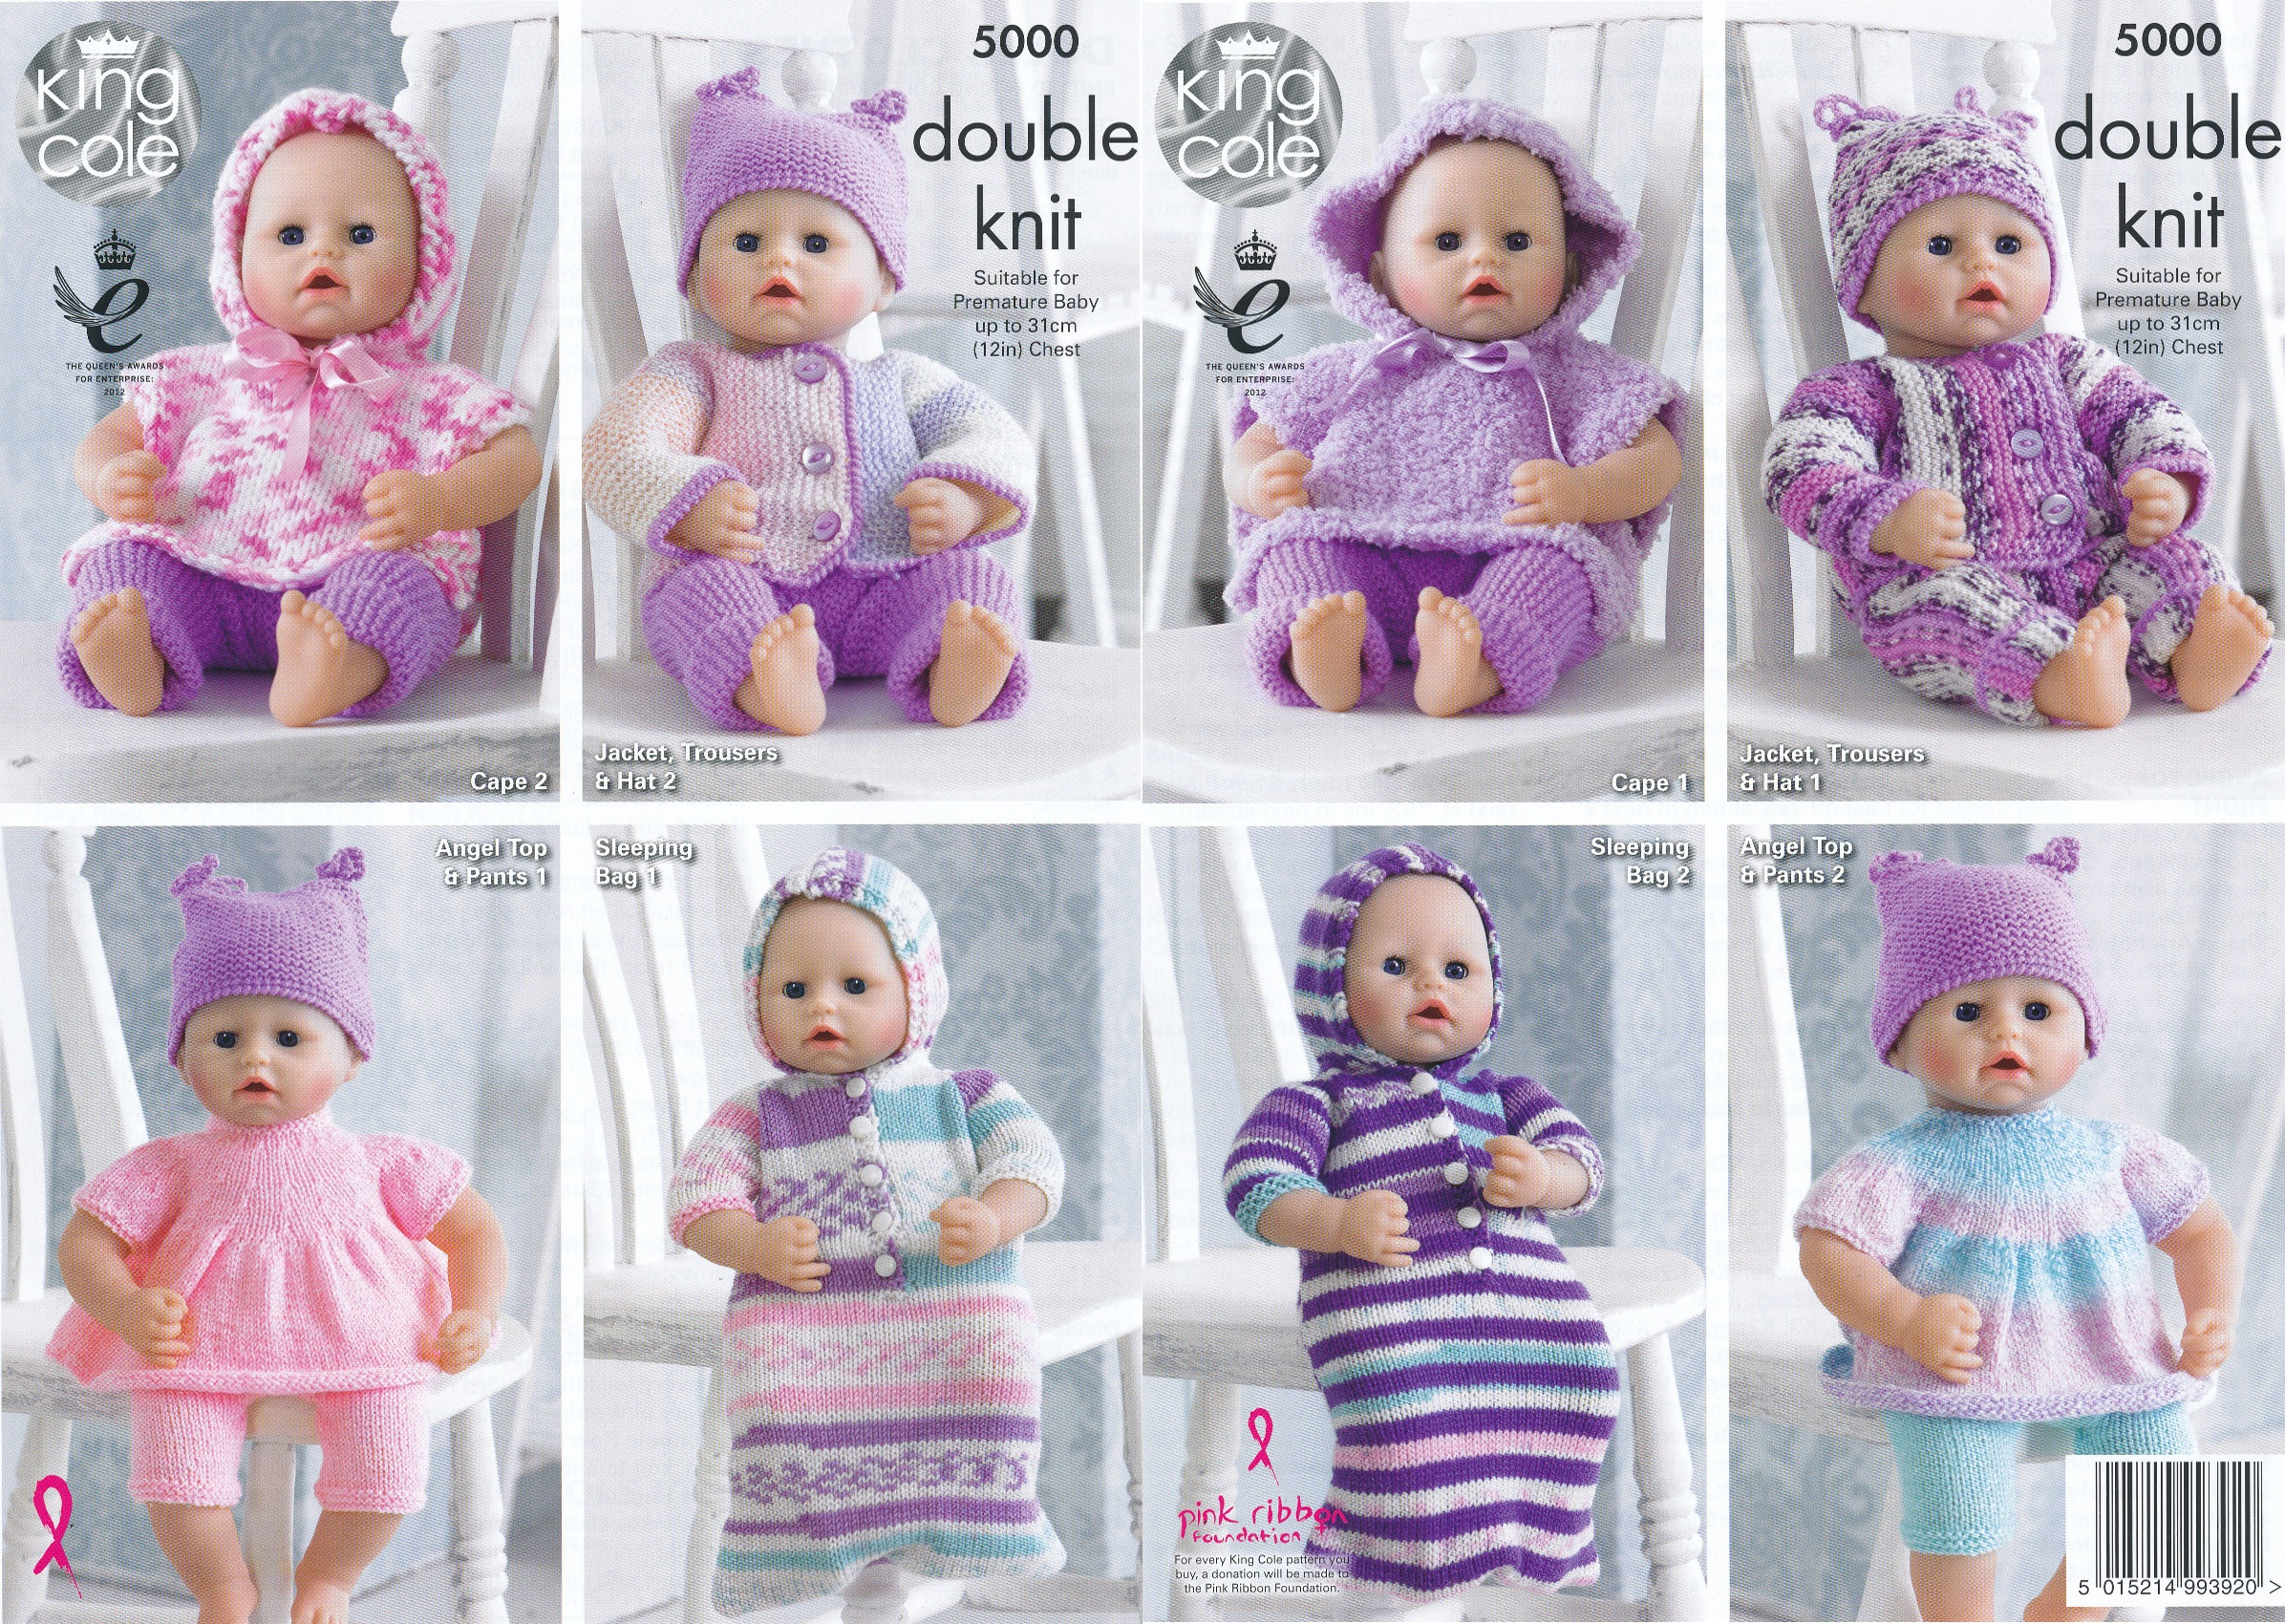 Knitting Pattern Doll Sleeping Bag : Double Knitting DK Pattern Dolls OR Premature Baby Clothes Sleeping BAG 5000 ...